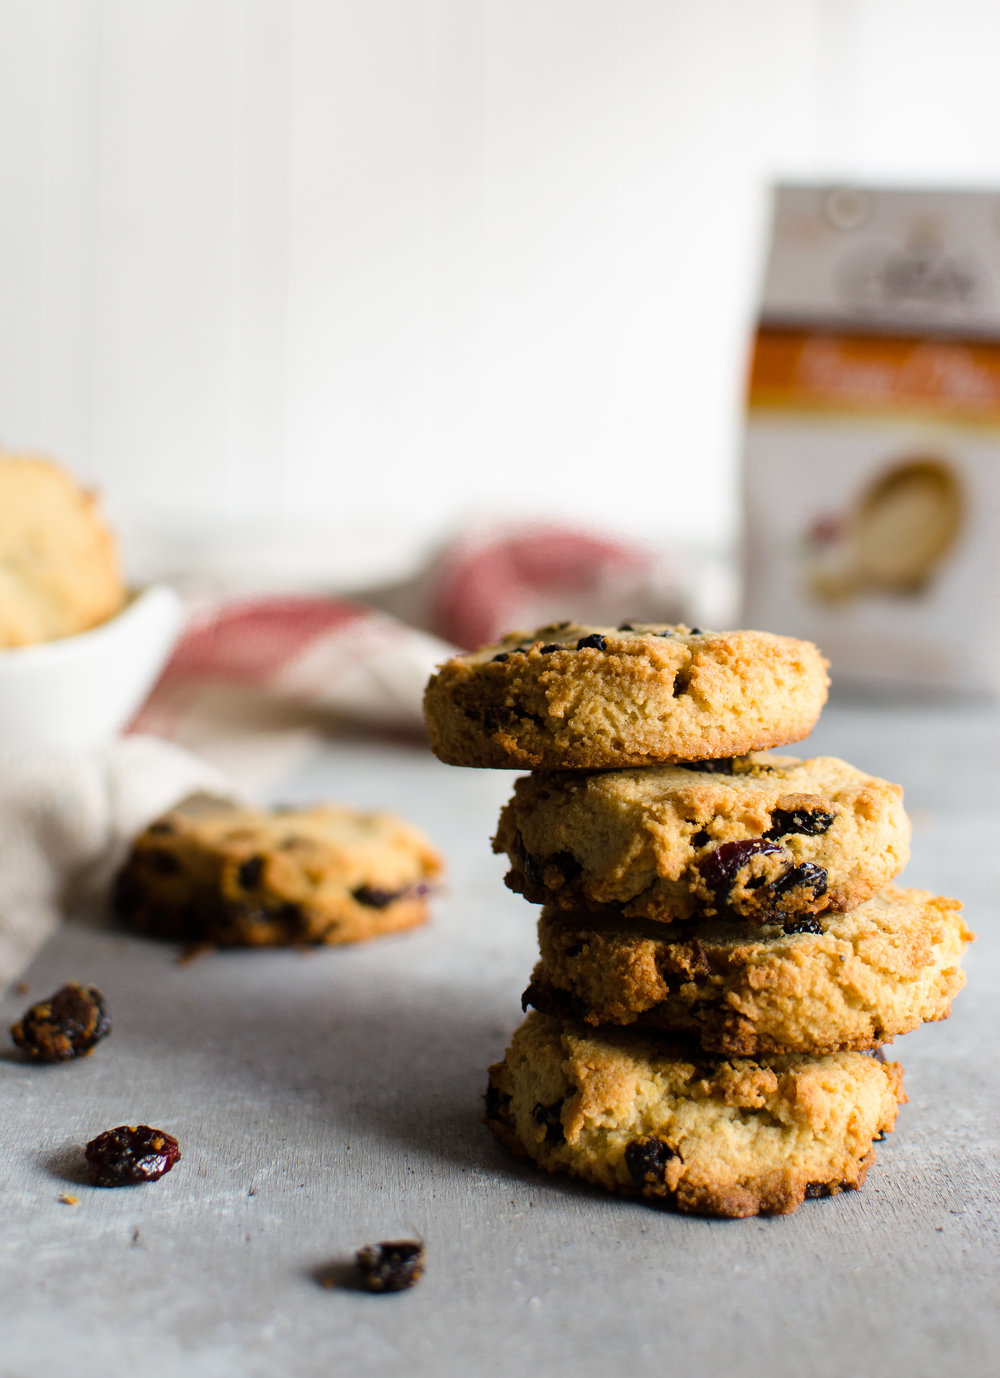 Fonio cookies with almonds and berries